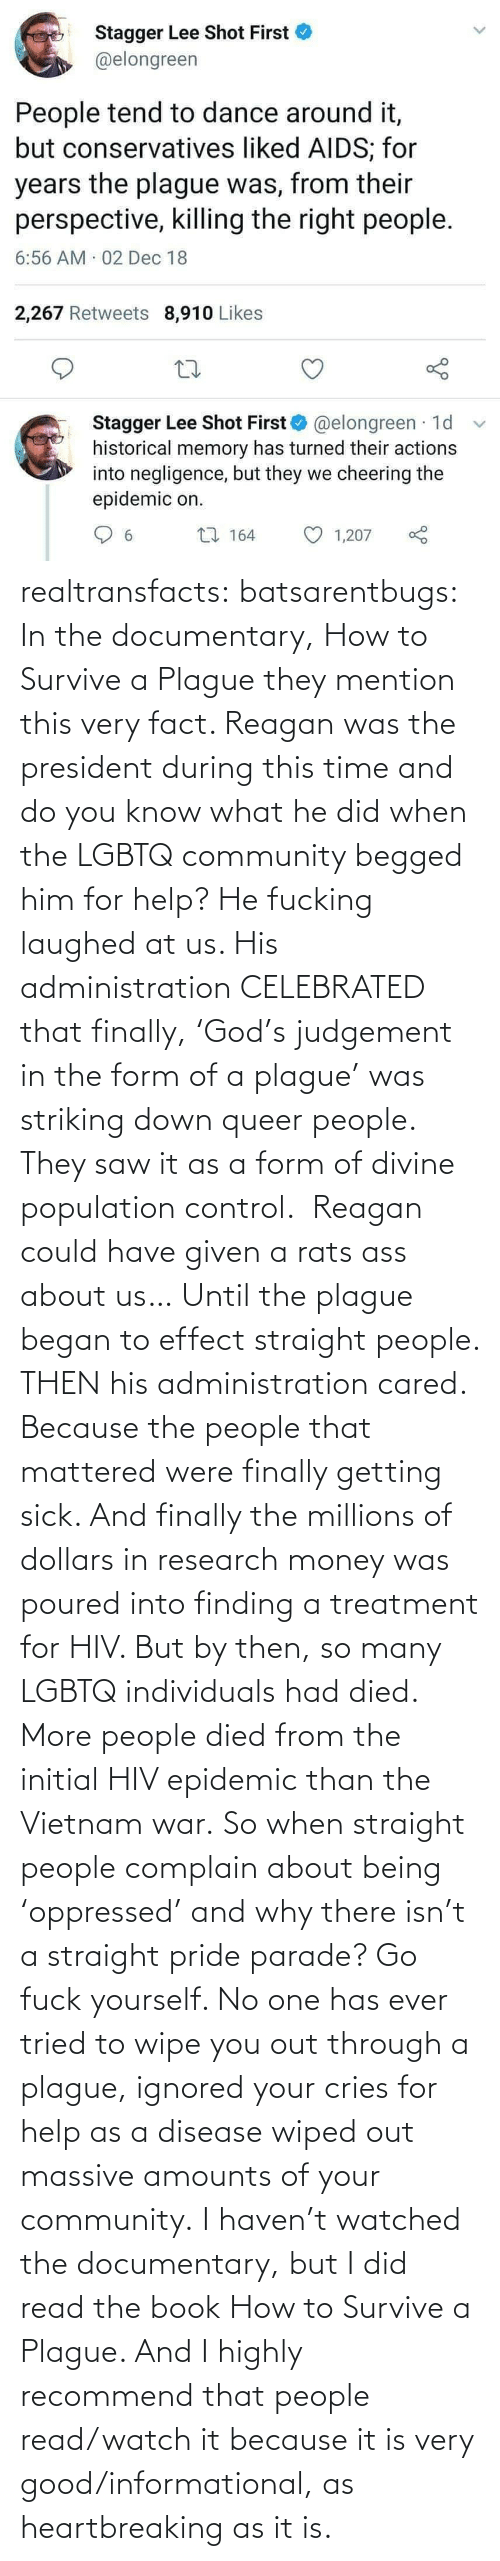 Very Good: Stagger Lee Shot First  @elongreen  People tend to dance around it,  but conservatives liked AIDS; for  years the plague was, from their  perspective, killing the right people.  6:56 AM 02 Dec 18  2,267 Retweets 8,910 Likes  Stagger Lee Shot First O @elongreen · 1d  historical memory has turned their actions  into negligence, but they we cheering the  epidemic on.  27 164  1,207  6. realtransfacts:  batsarentbugs:  In the documentary, How to Survive a Plague they mention this very fact. Reagan was the president during this time and do you know what he did when the LGBTQ community begged him for help? He fucking laughed at us. His administration CELEBRATED that finally, 'God's judgement in the form of a plague' was striking down queer people.  They saw it as a form of divine population control.  Reagan could have given a rats ass about us… Until the plague began to effect straight people. THEN his administration cared. Because the people that mattered were finally getting sick. And finally the millions of dollars in research money was poured into finding a treatment for HIV. But by then, so many LGBTQ individuals had died.  More people died from the initial HIV epidemic than the Vietnam war. So when straight people complain about being 'oppressed' and why there isn't a straight pride parade? Go fuck yourself. No one has ever tried to wipe you out through a plague, ignored your cries for help as a disease wiped out massive amounts of your community.  I haven't watched the documentary, but I did read the book  How to Survive a Plague. And I highly recommend that people read/watch it because it is very good/informational, as heartbreaking as it is.